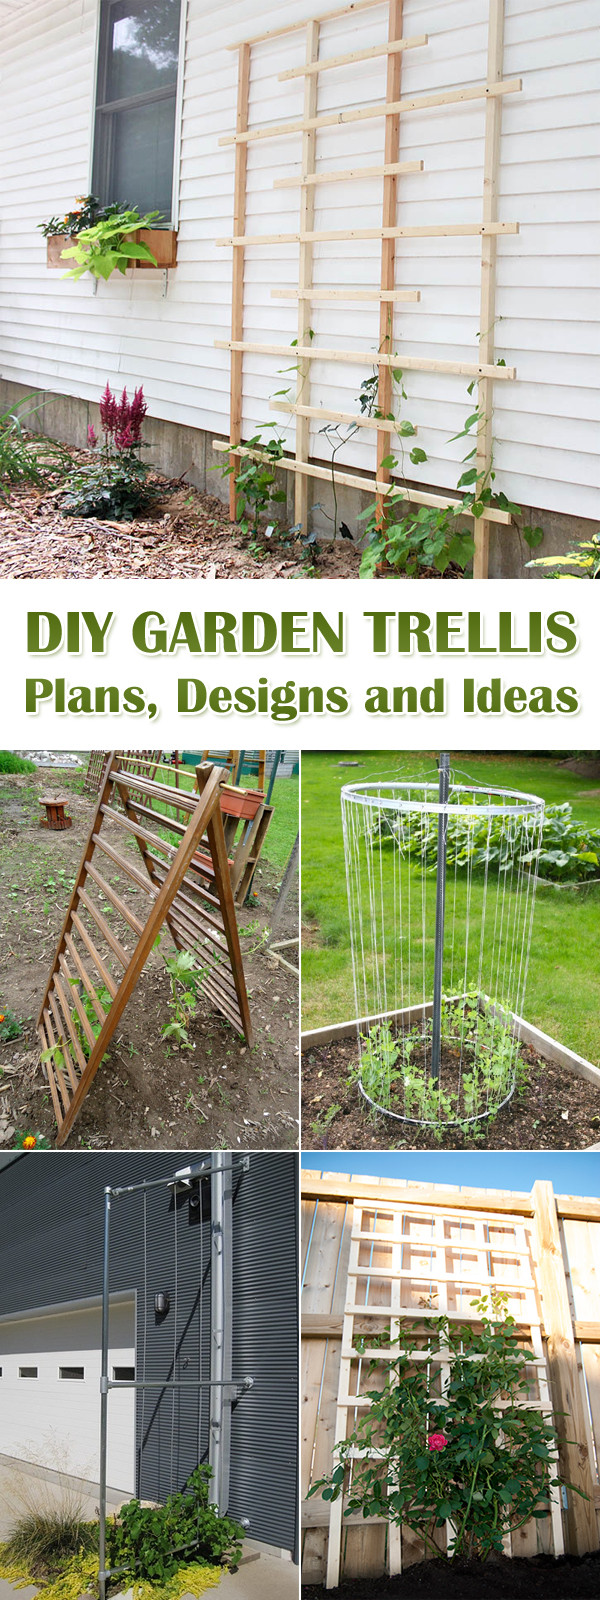 Best ideas about DIY Trellis Plans . Save or Pin 12 DIY Garden Trellis Plans Designs and Ideas Now.